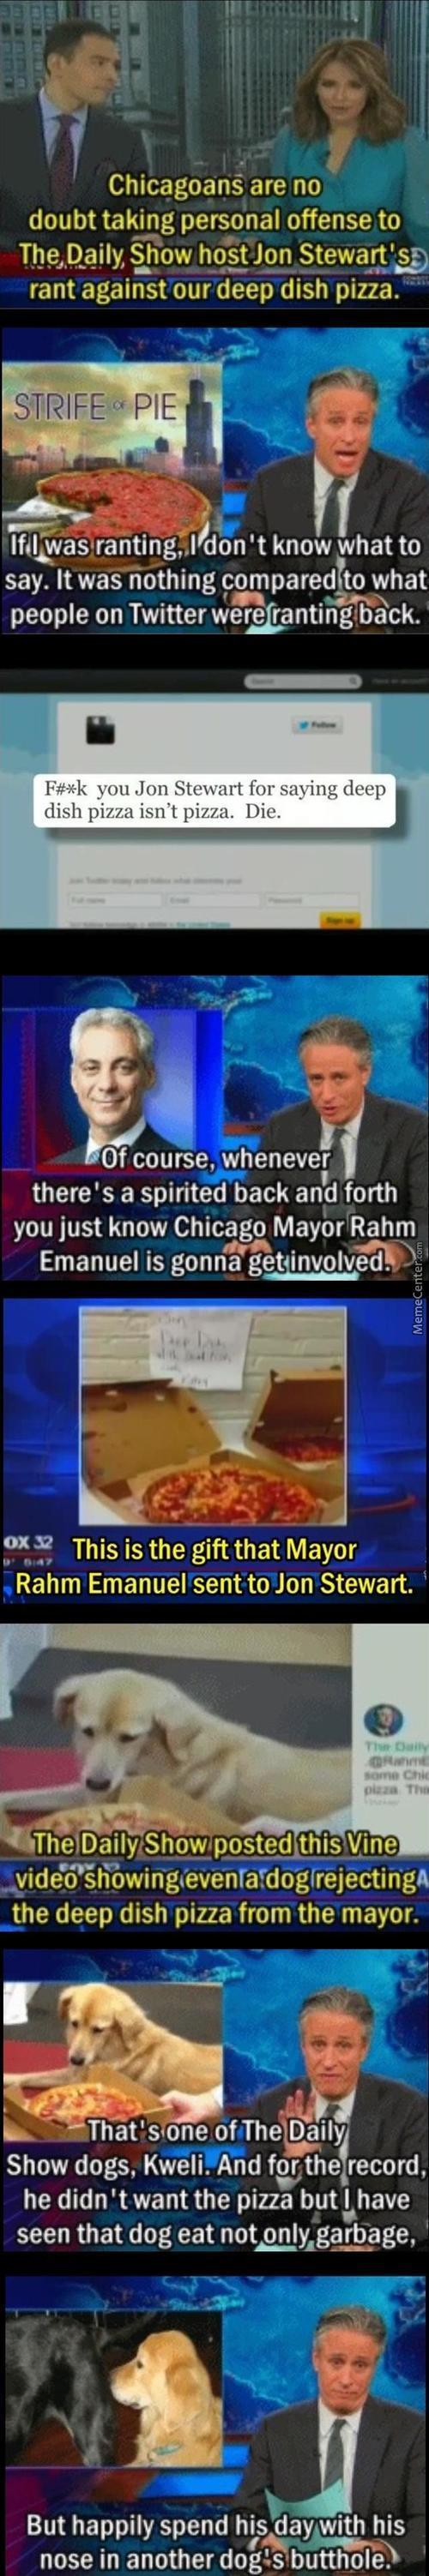 Daily Show: Deep Dish Pizza